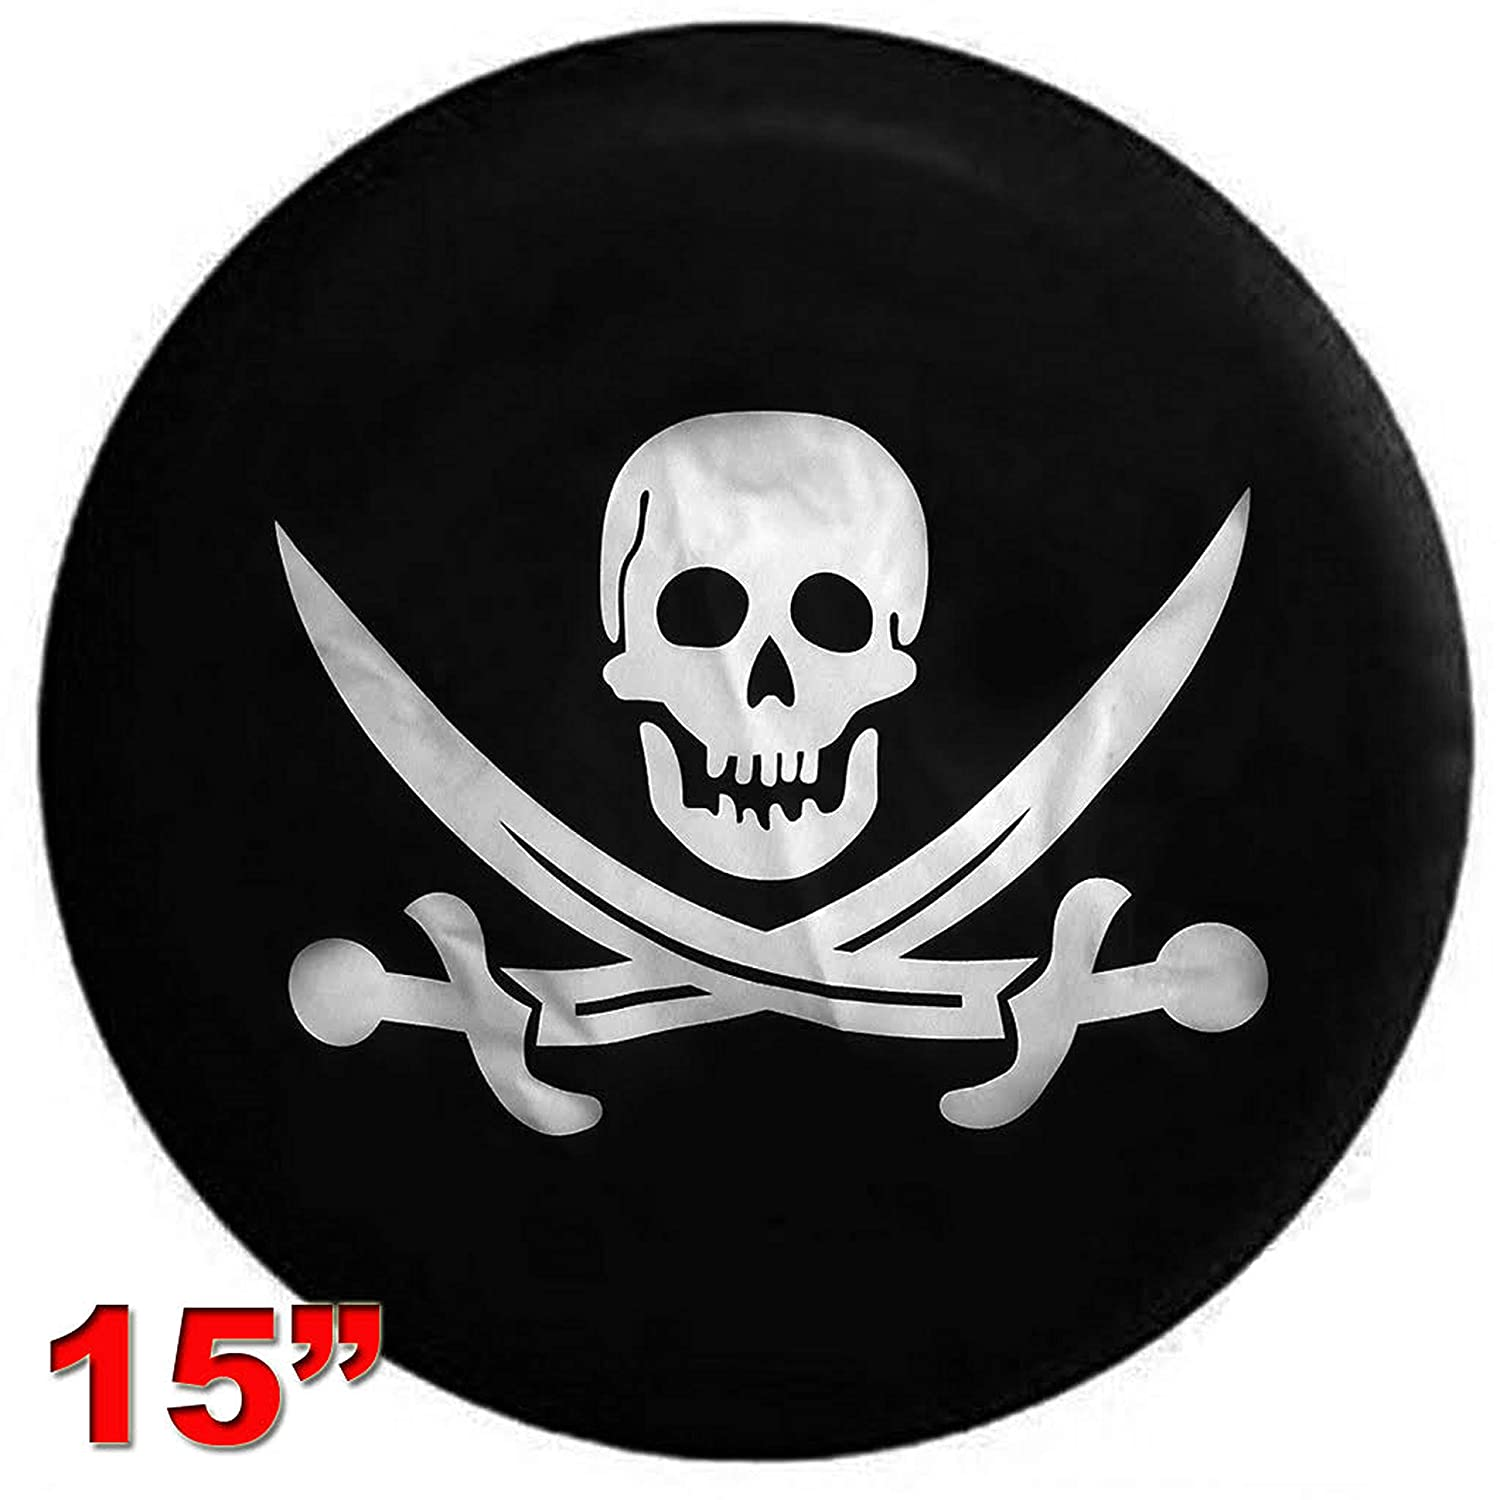 XL 17 INCH Choose from Multiple Designs with Flag /& Crossbones Kenkesh Skull Spare Tire Cover for RV Jeep Wranglers , Skull 2 Rugged Weather Resistant Leather Grain Vinyl Boat Trailer